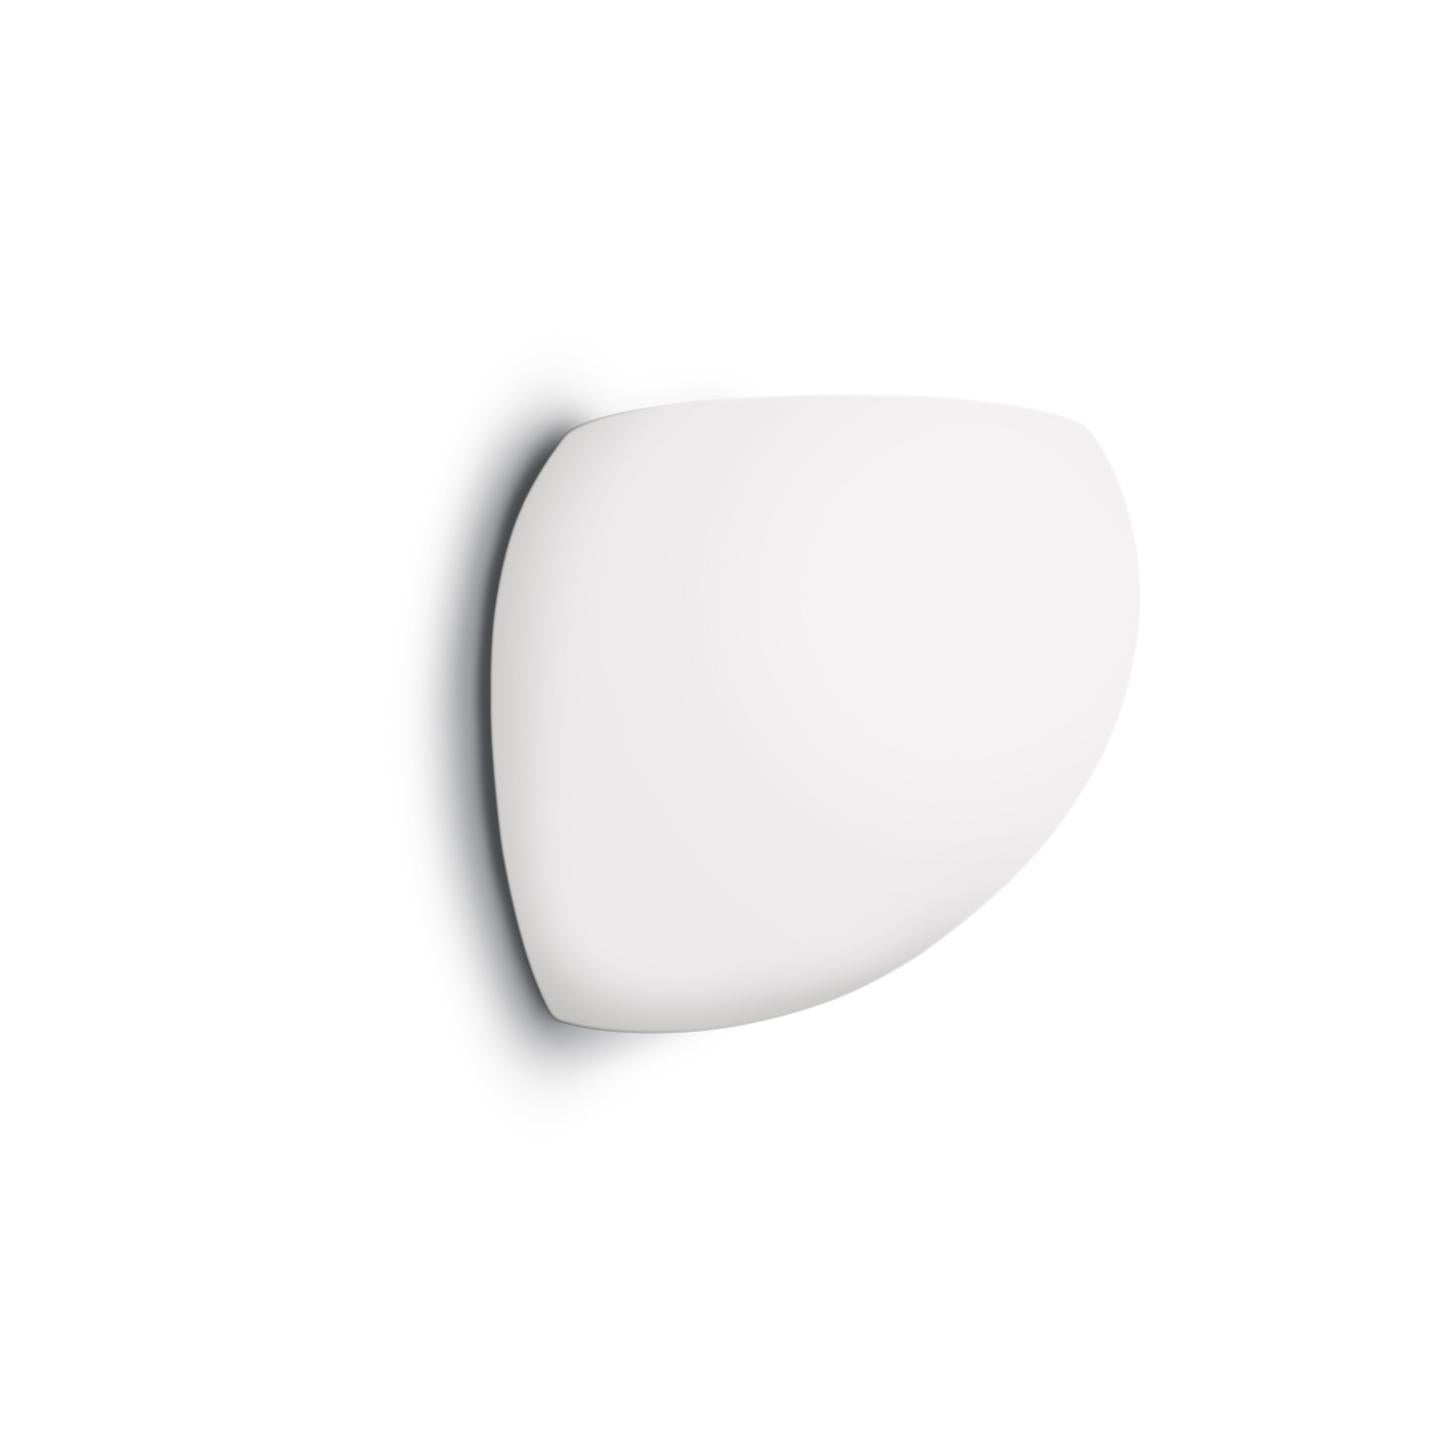 Leucos Golf P LED Wall Light in Satin White and Brushed Nickel by Toso & Massari